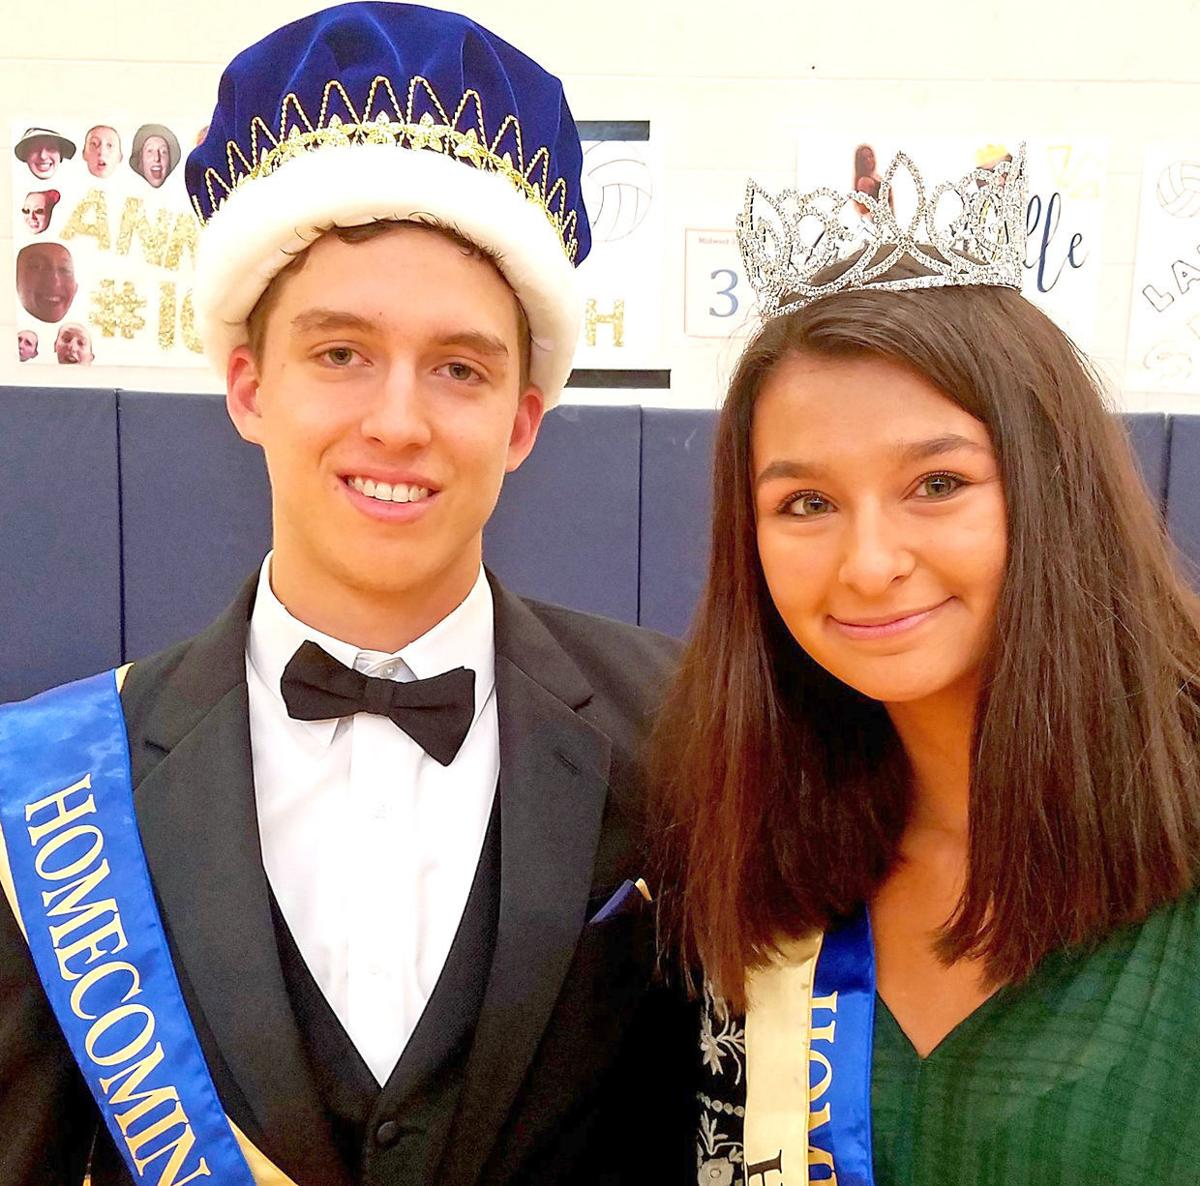 Homecoming King King and Queen Queen